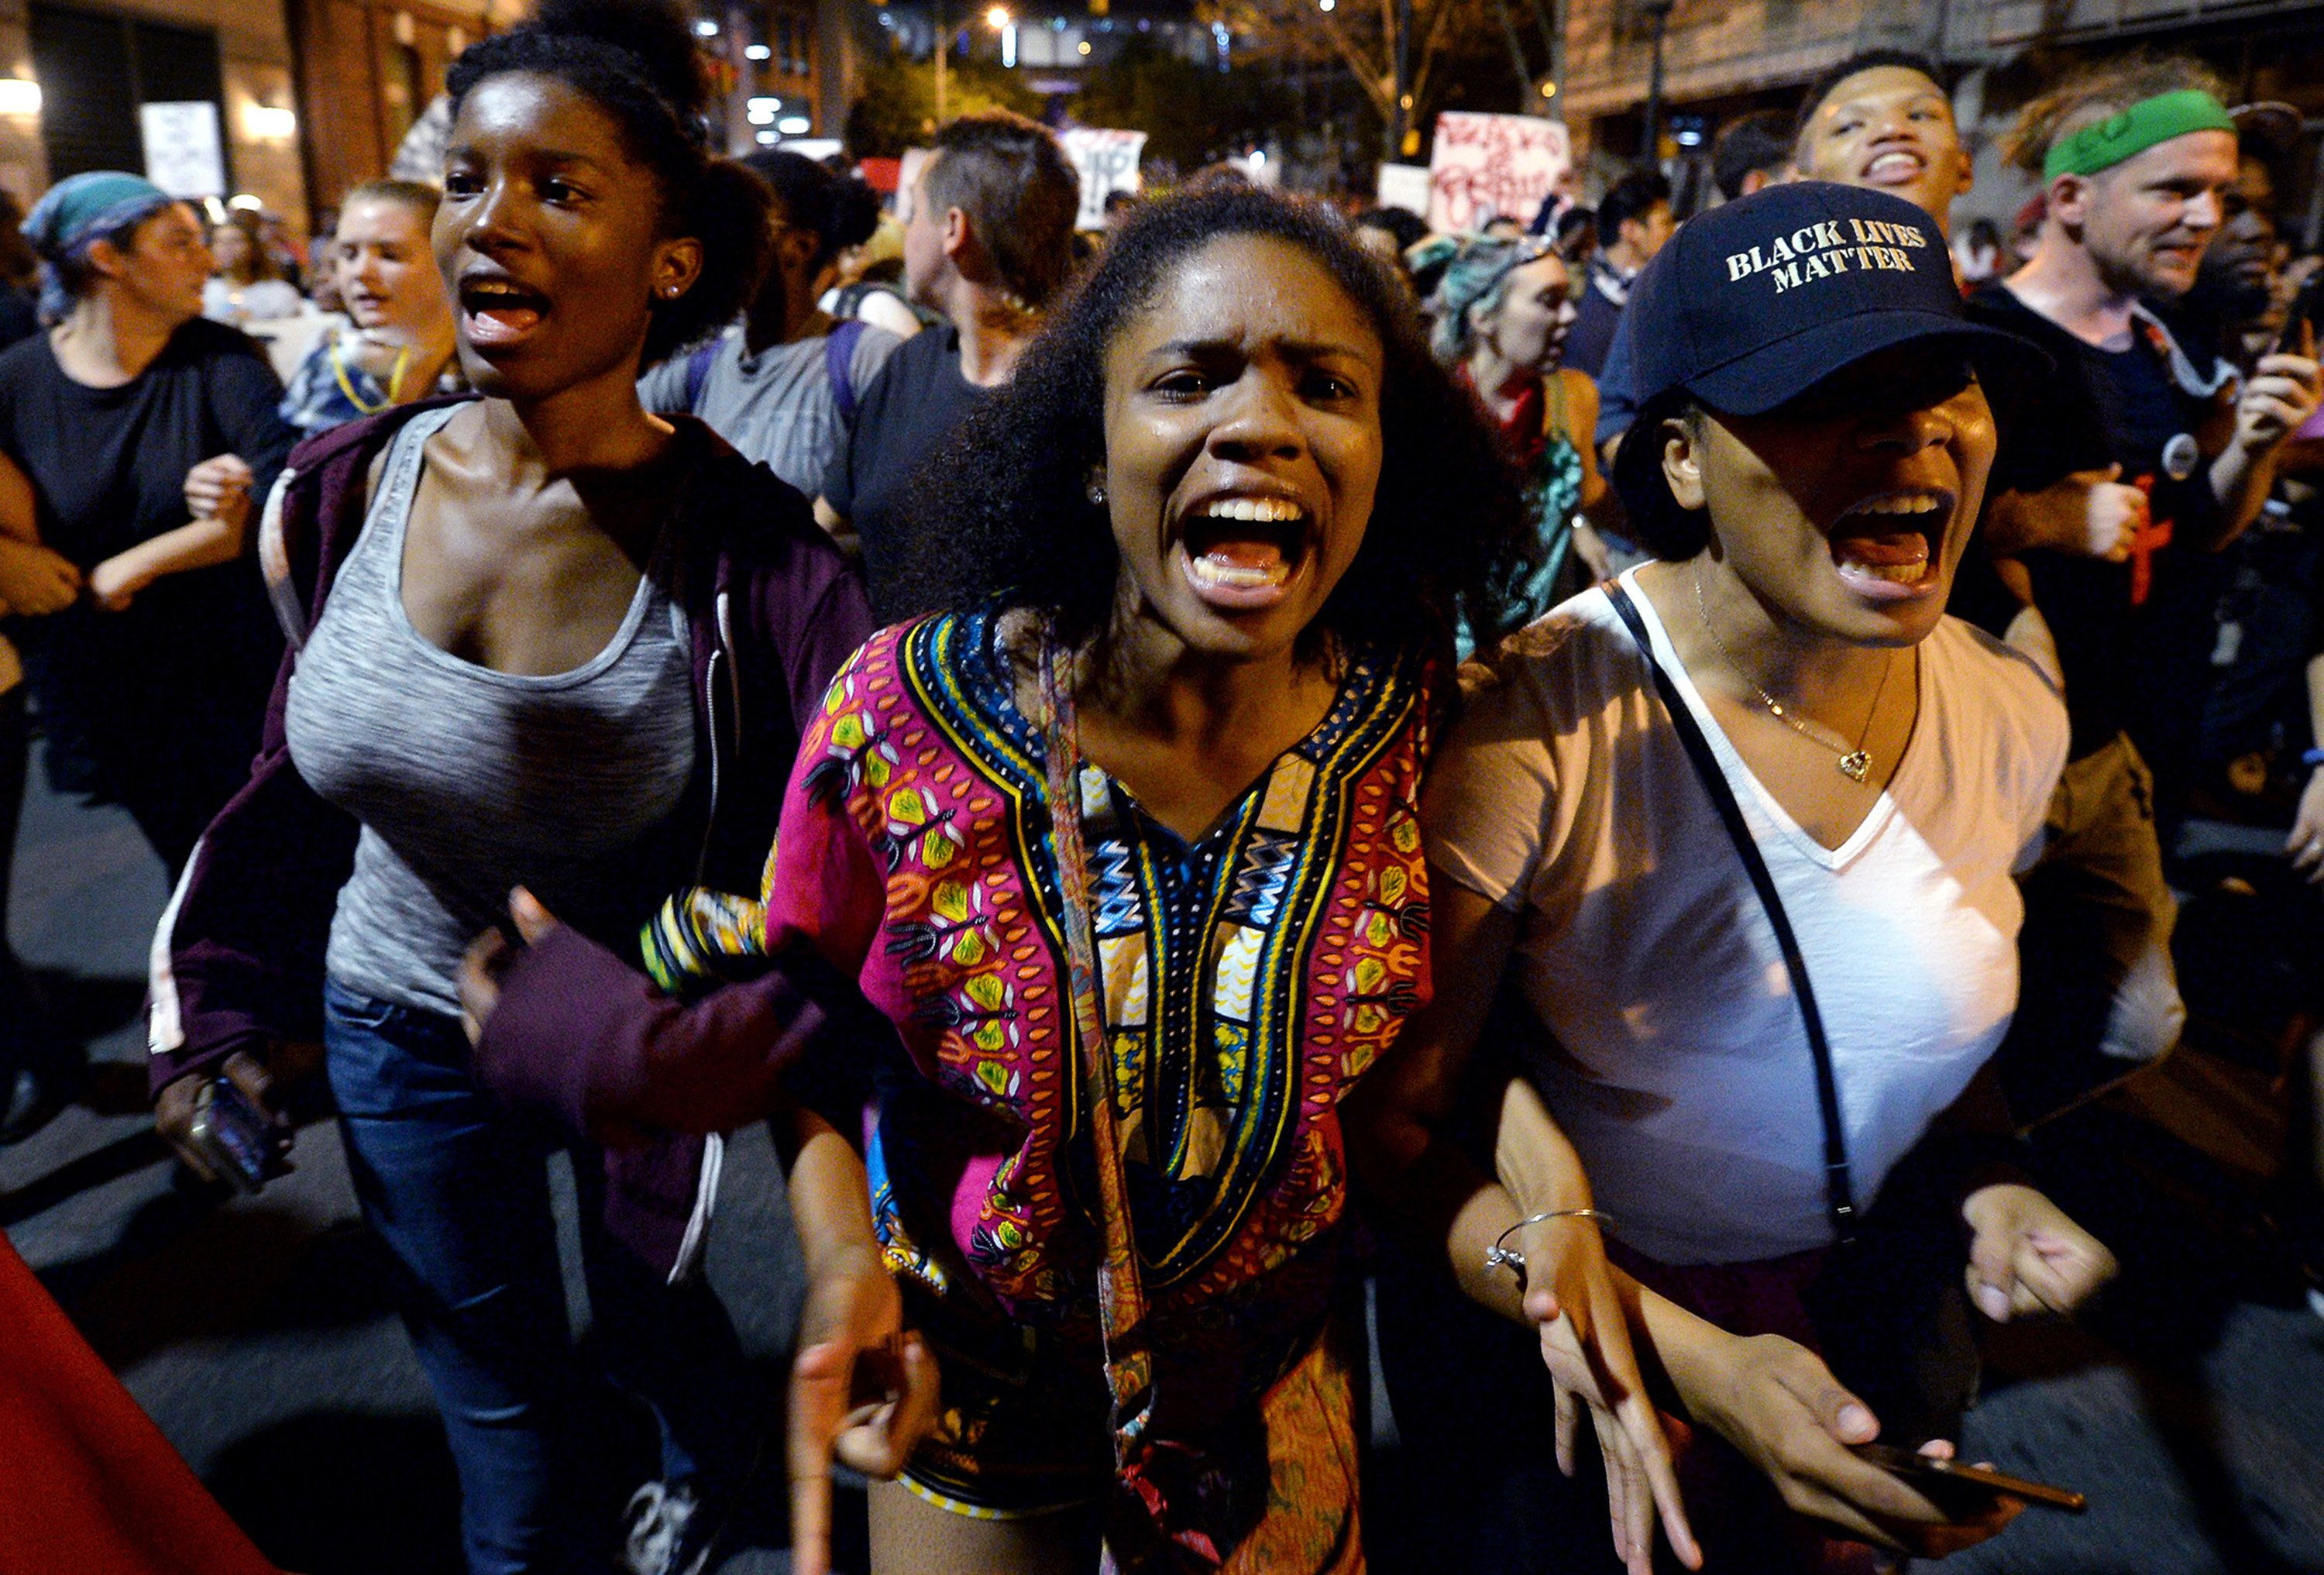 Protesters chant 'Black Lives Matter' as they march throughout the city of Charlotte, N.C., on Friday, Sept. 23, 2016, as demonstrations continue following the shooting death of Keith Scott by police earlier in the week. (Jeff Siner/Charlotte Observer/TNS via Getty Images)